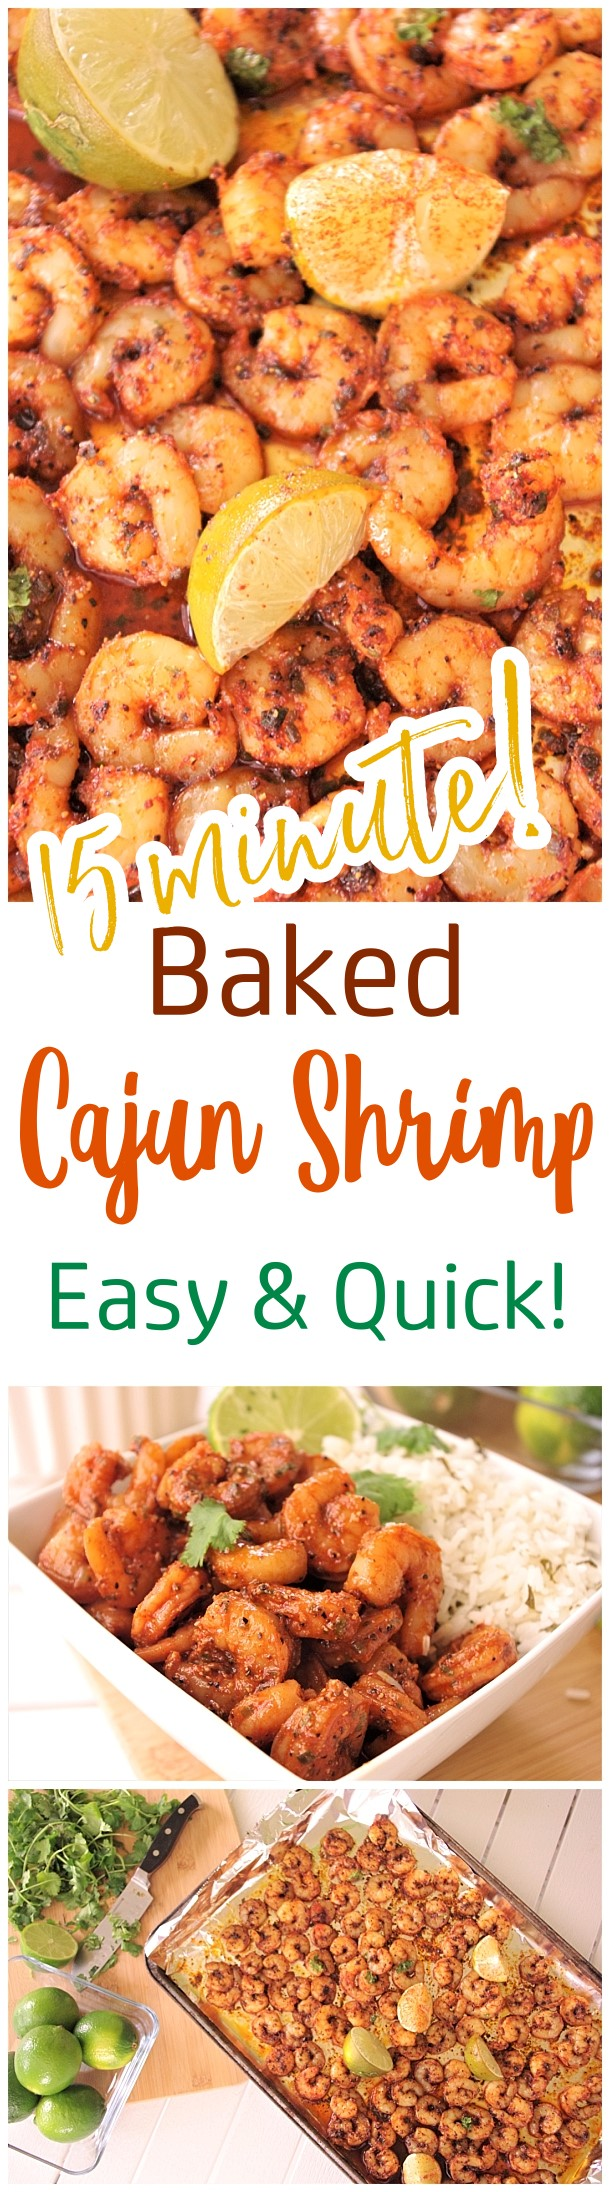 Baked Sheet Pan Cajun Shrimp Recipe - 15 minutes and so delicious! Use it in tacos, meal prep bowls, or over rice or noodles. So versatile and the flavor is so yummy you'll want to eat the entire pan by itself! - Dreaming in DIY #sheetpansuppers #bakedshrimp #cajunshrimp #bakedcajunshrimp #easylunches #easydinners #shrimprecipes #shrimp